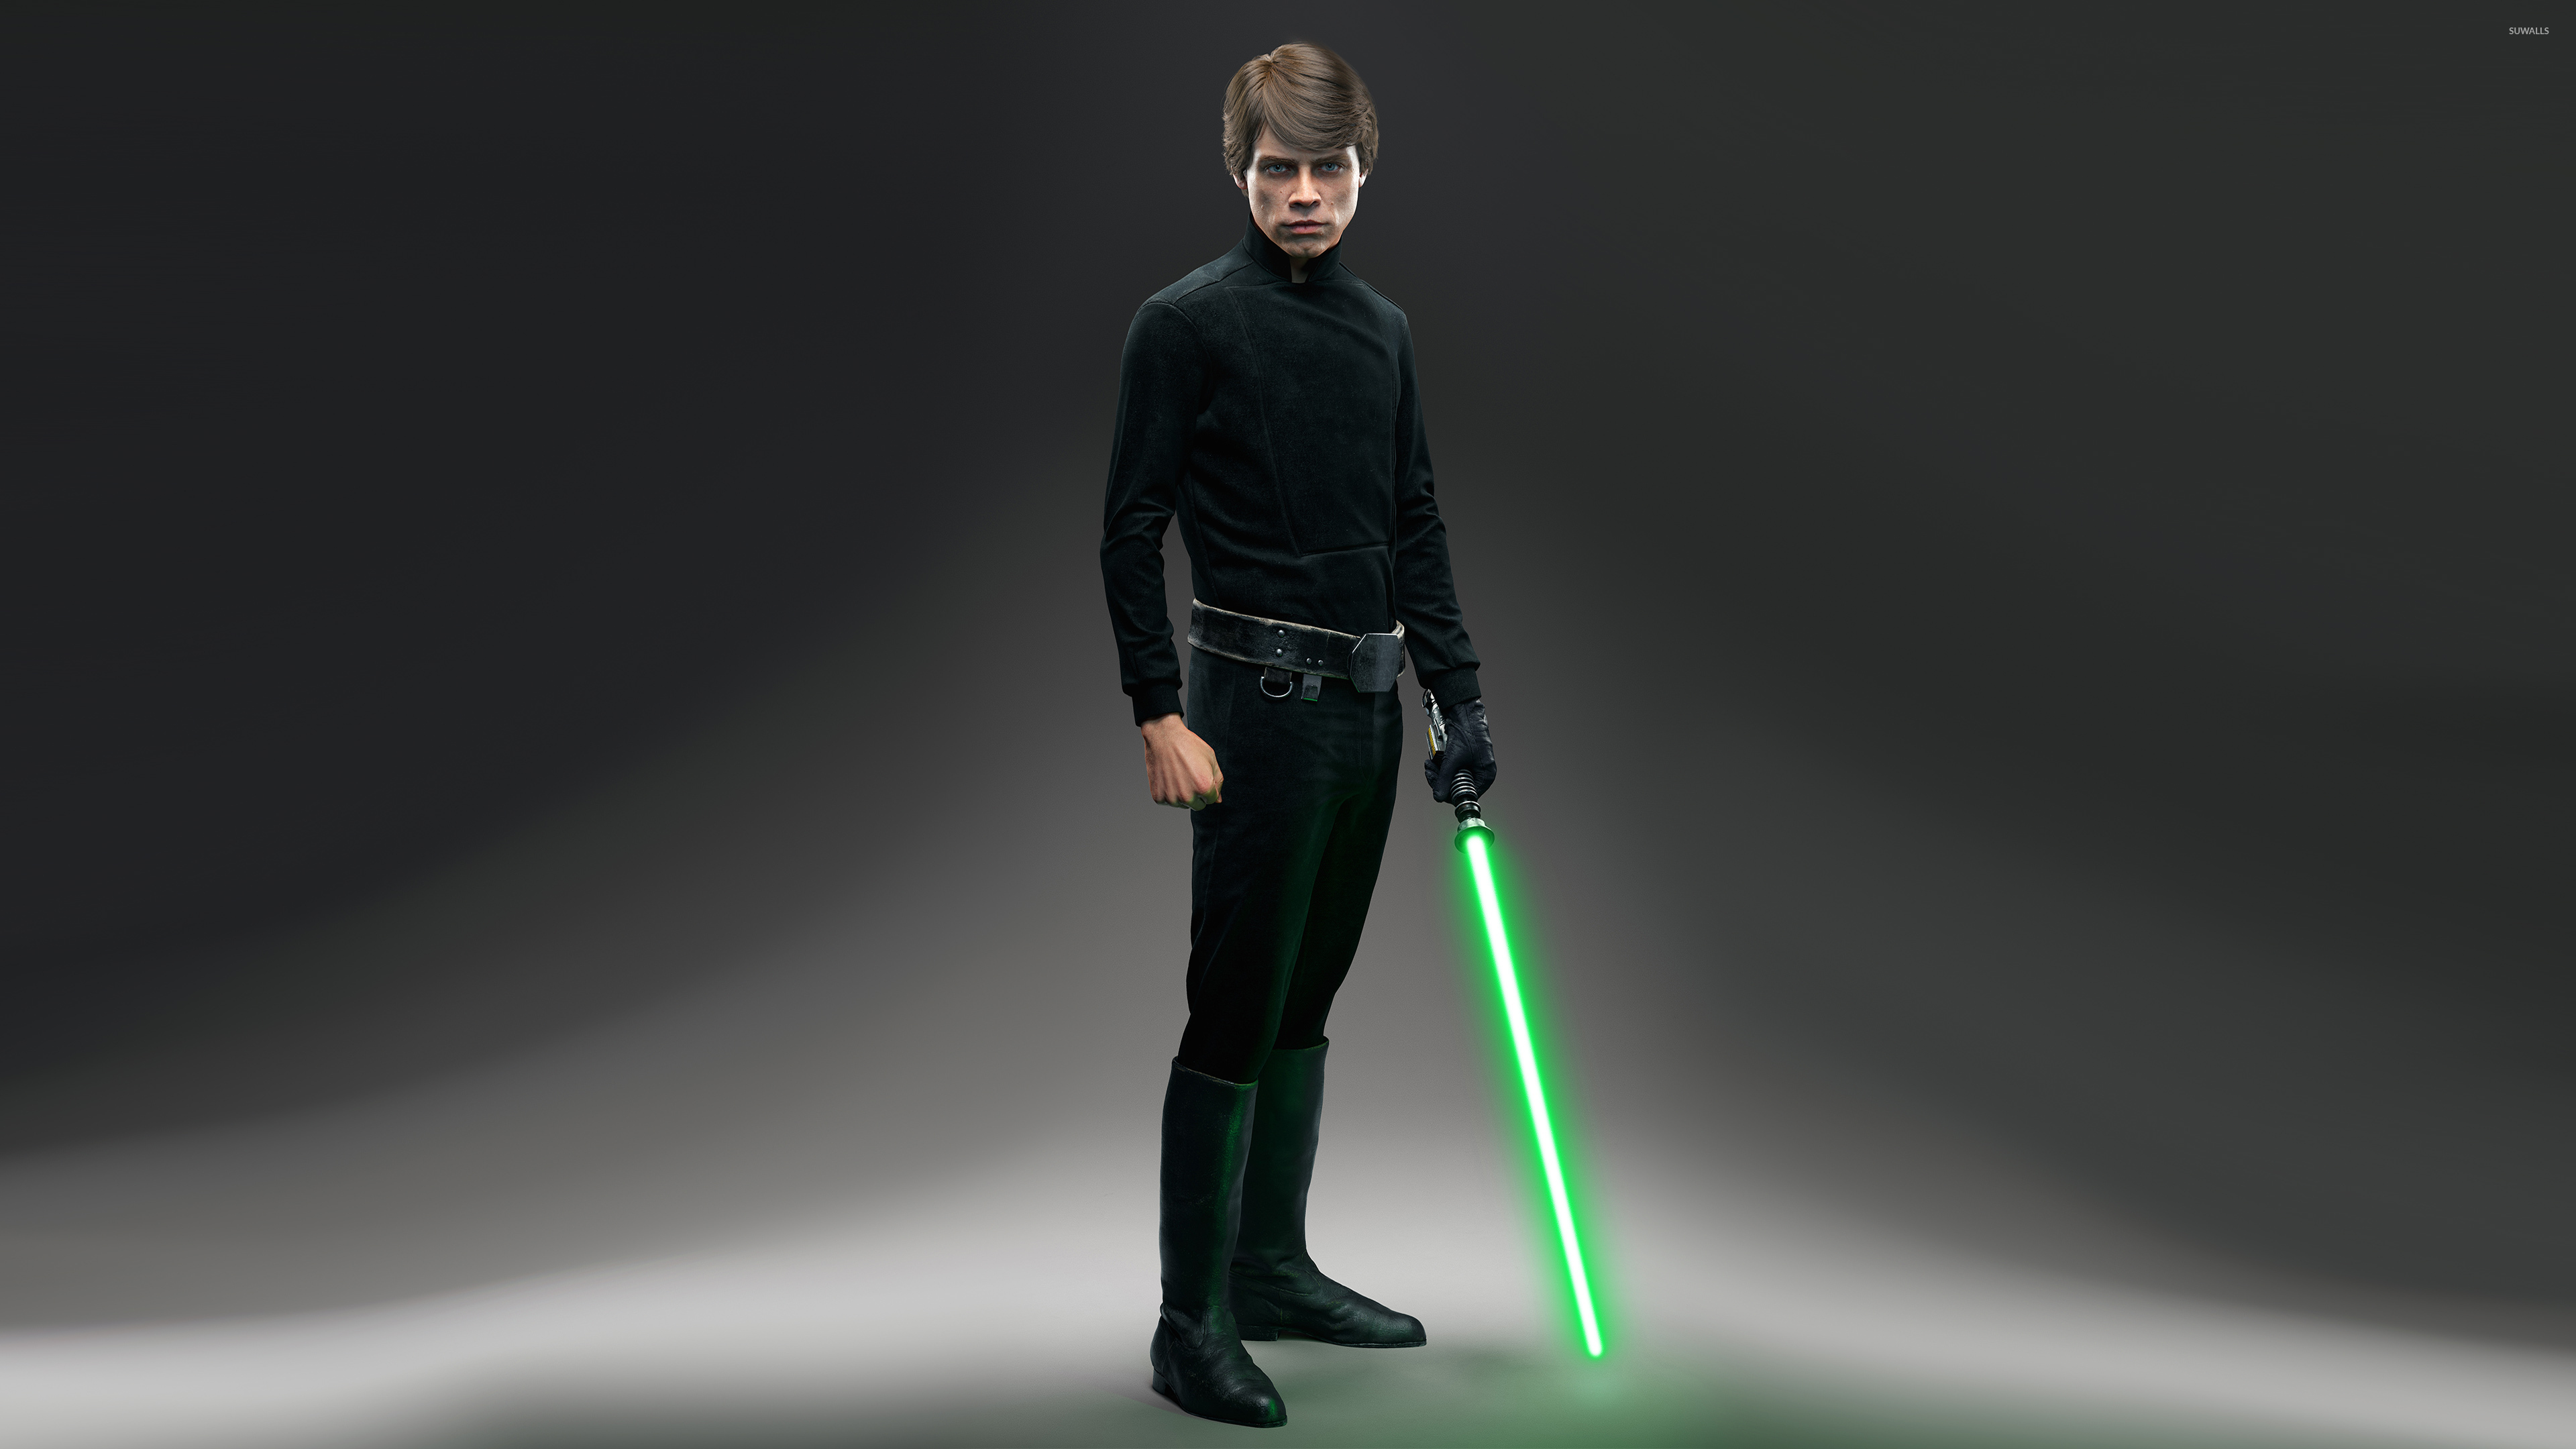 Luke Skywalker   Star Wars Battlefront wallpaper   Game 3840x2160